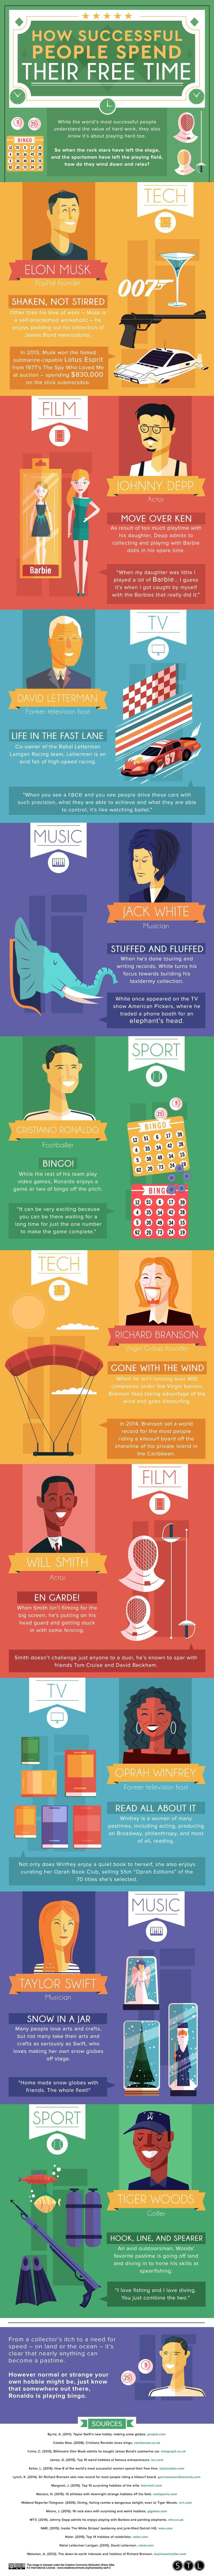 How Successful People Spend Their Free Time - #infographic